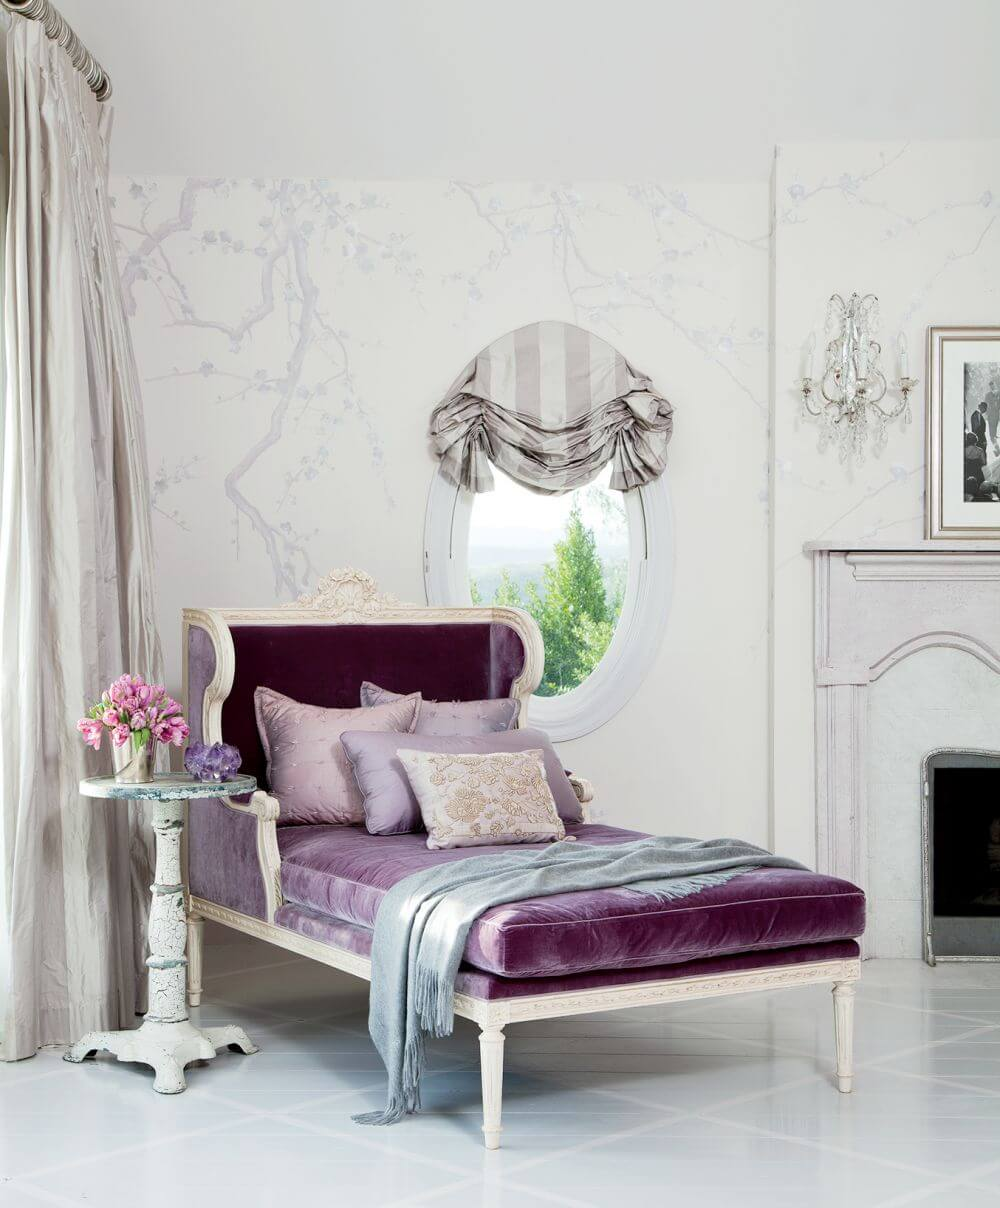 10 Chaise Lounge Design Ideas For Contemporary Touch